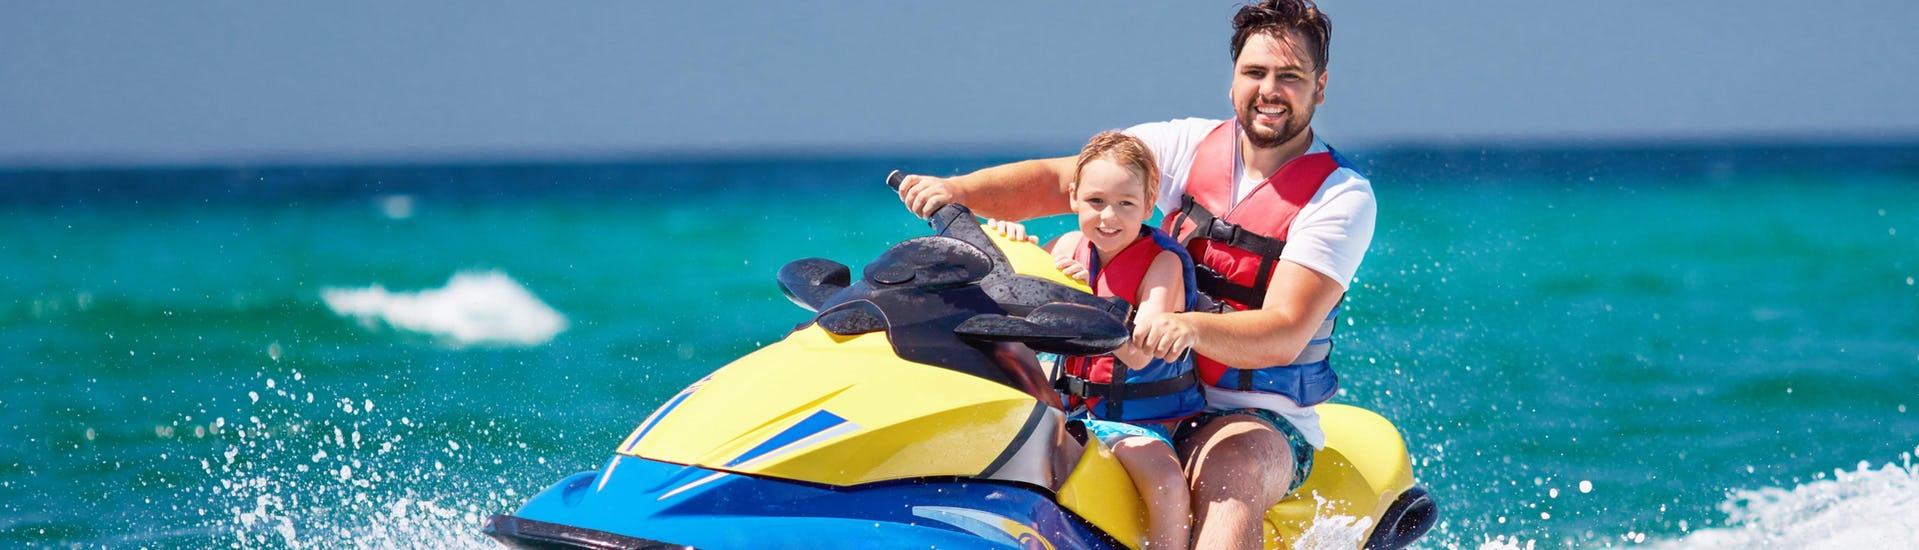 Father and daughter are having fun on a jetski